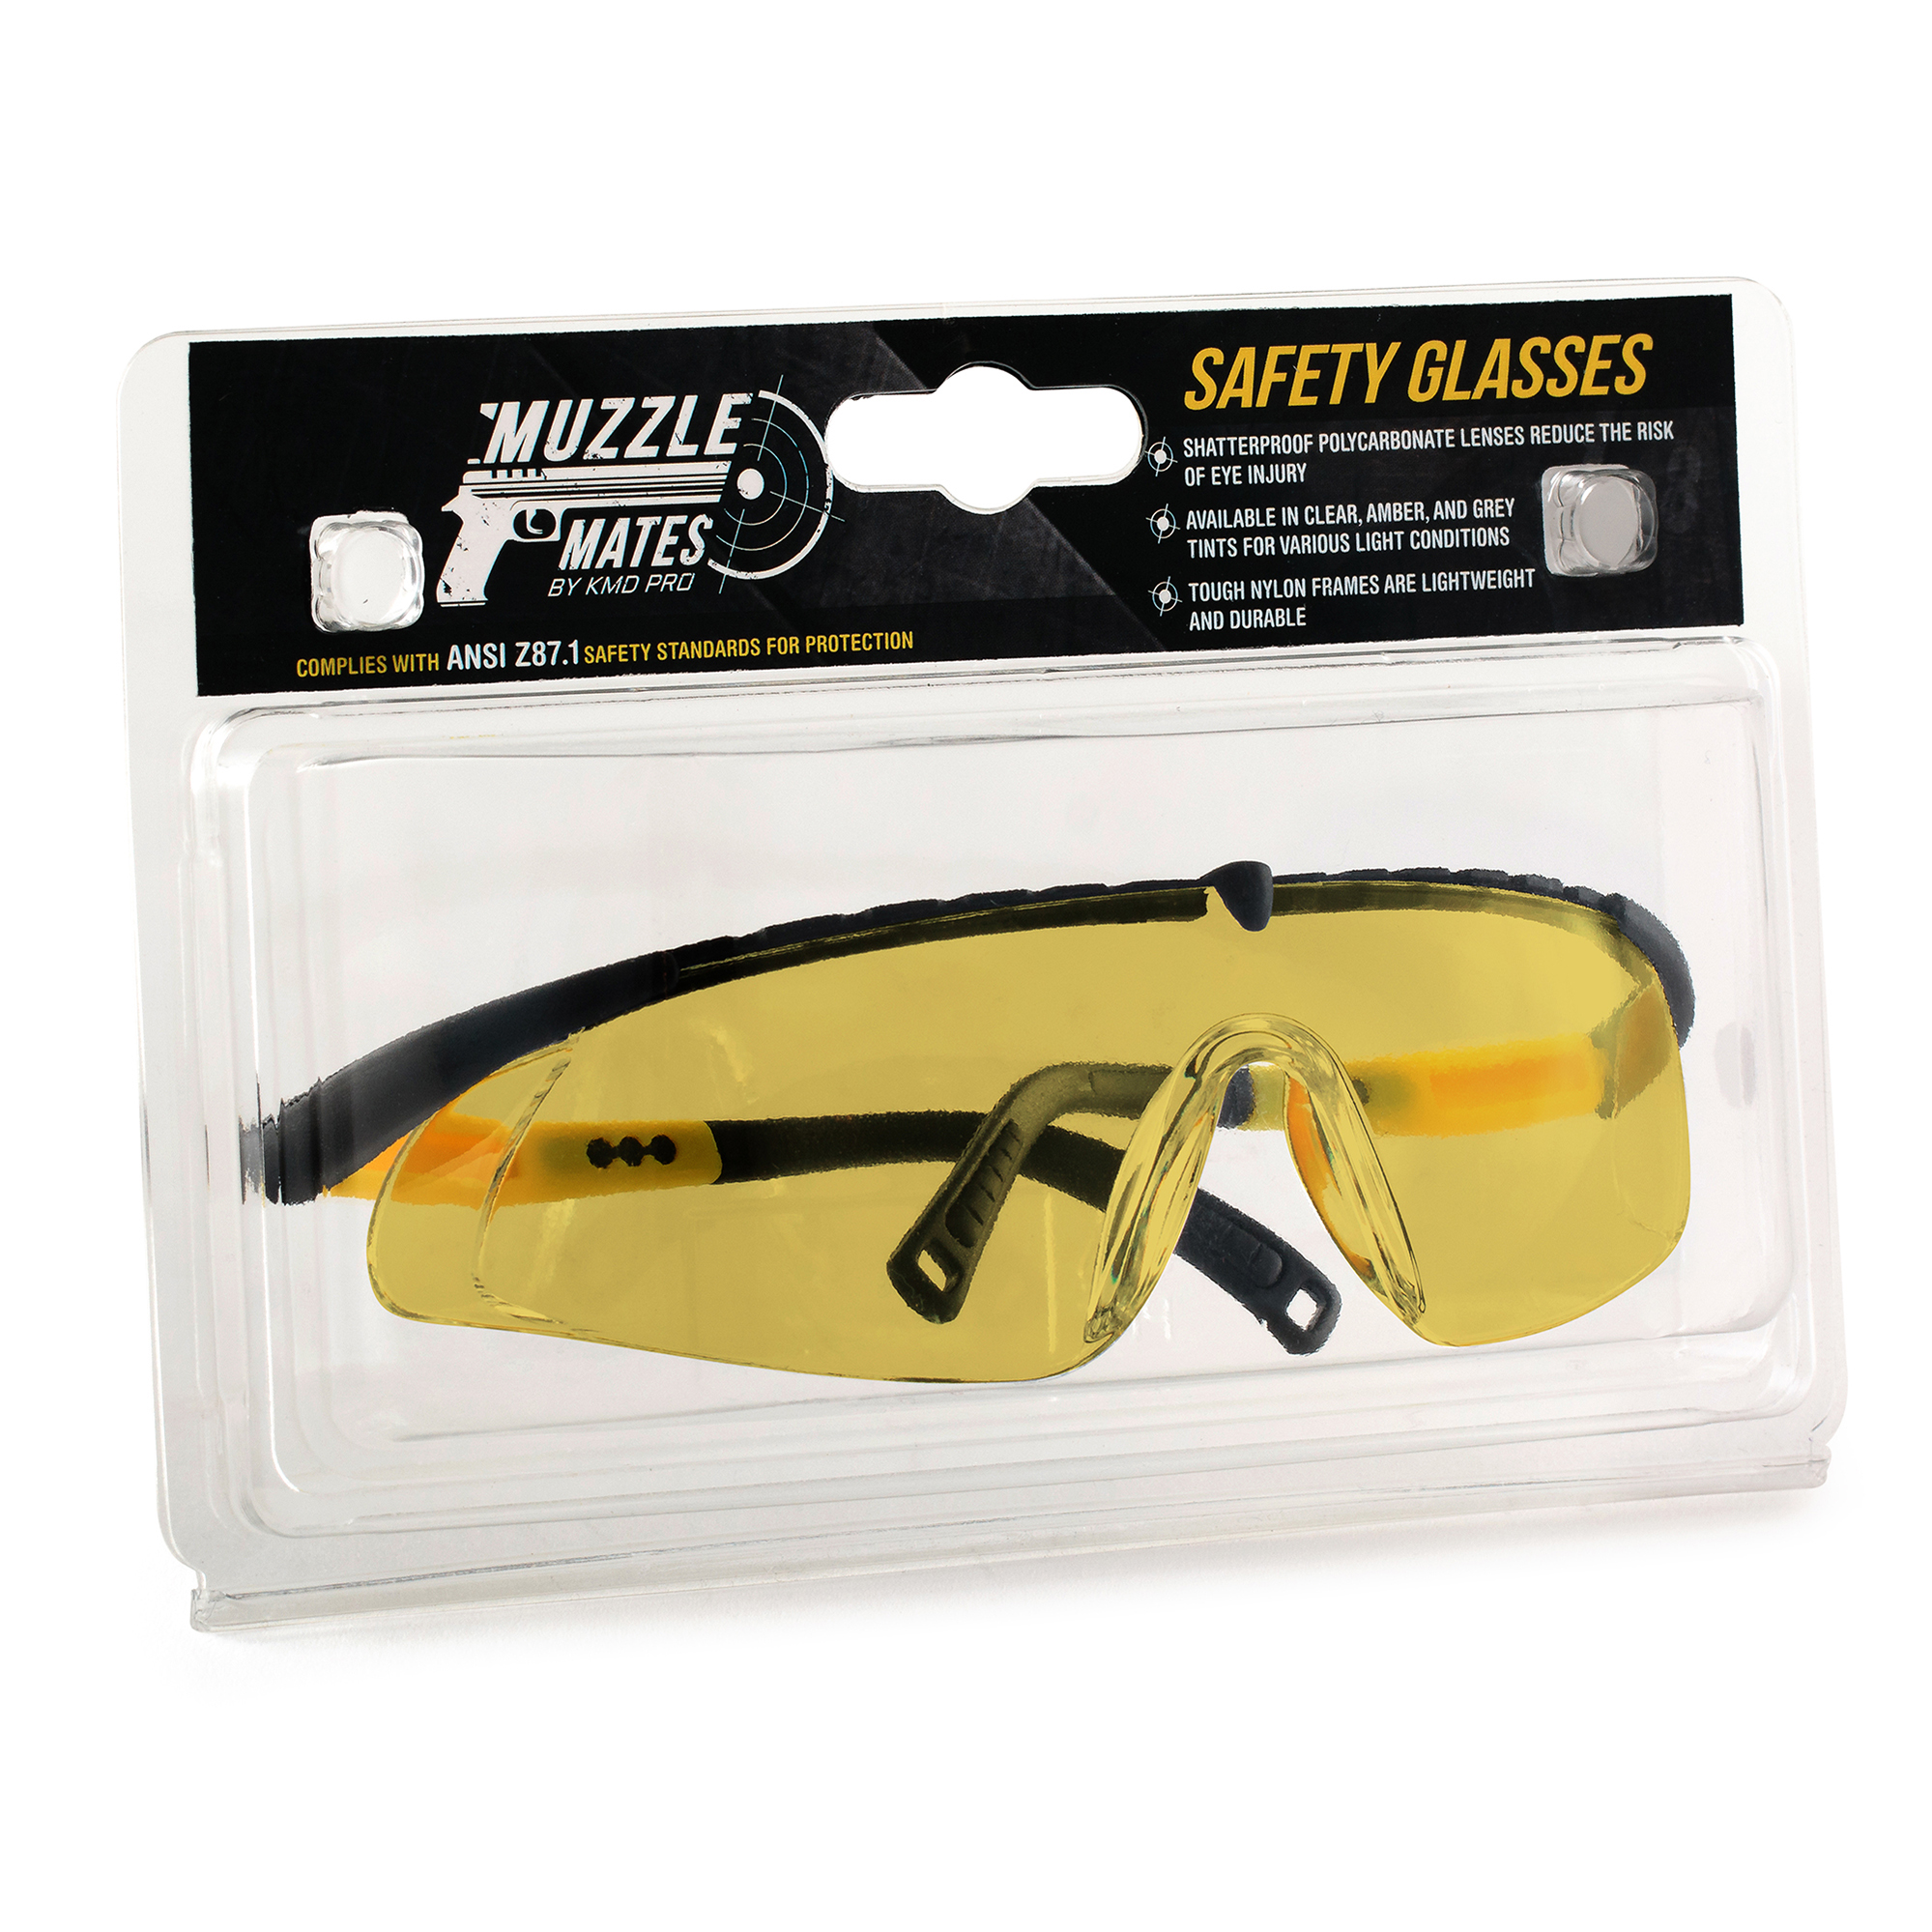 8723dc0a41 Muzzle Mates ANSI Approved Safety Glasses with Anti Fog  Scratch ...